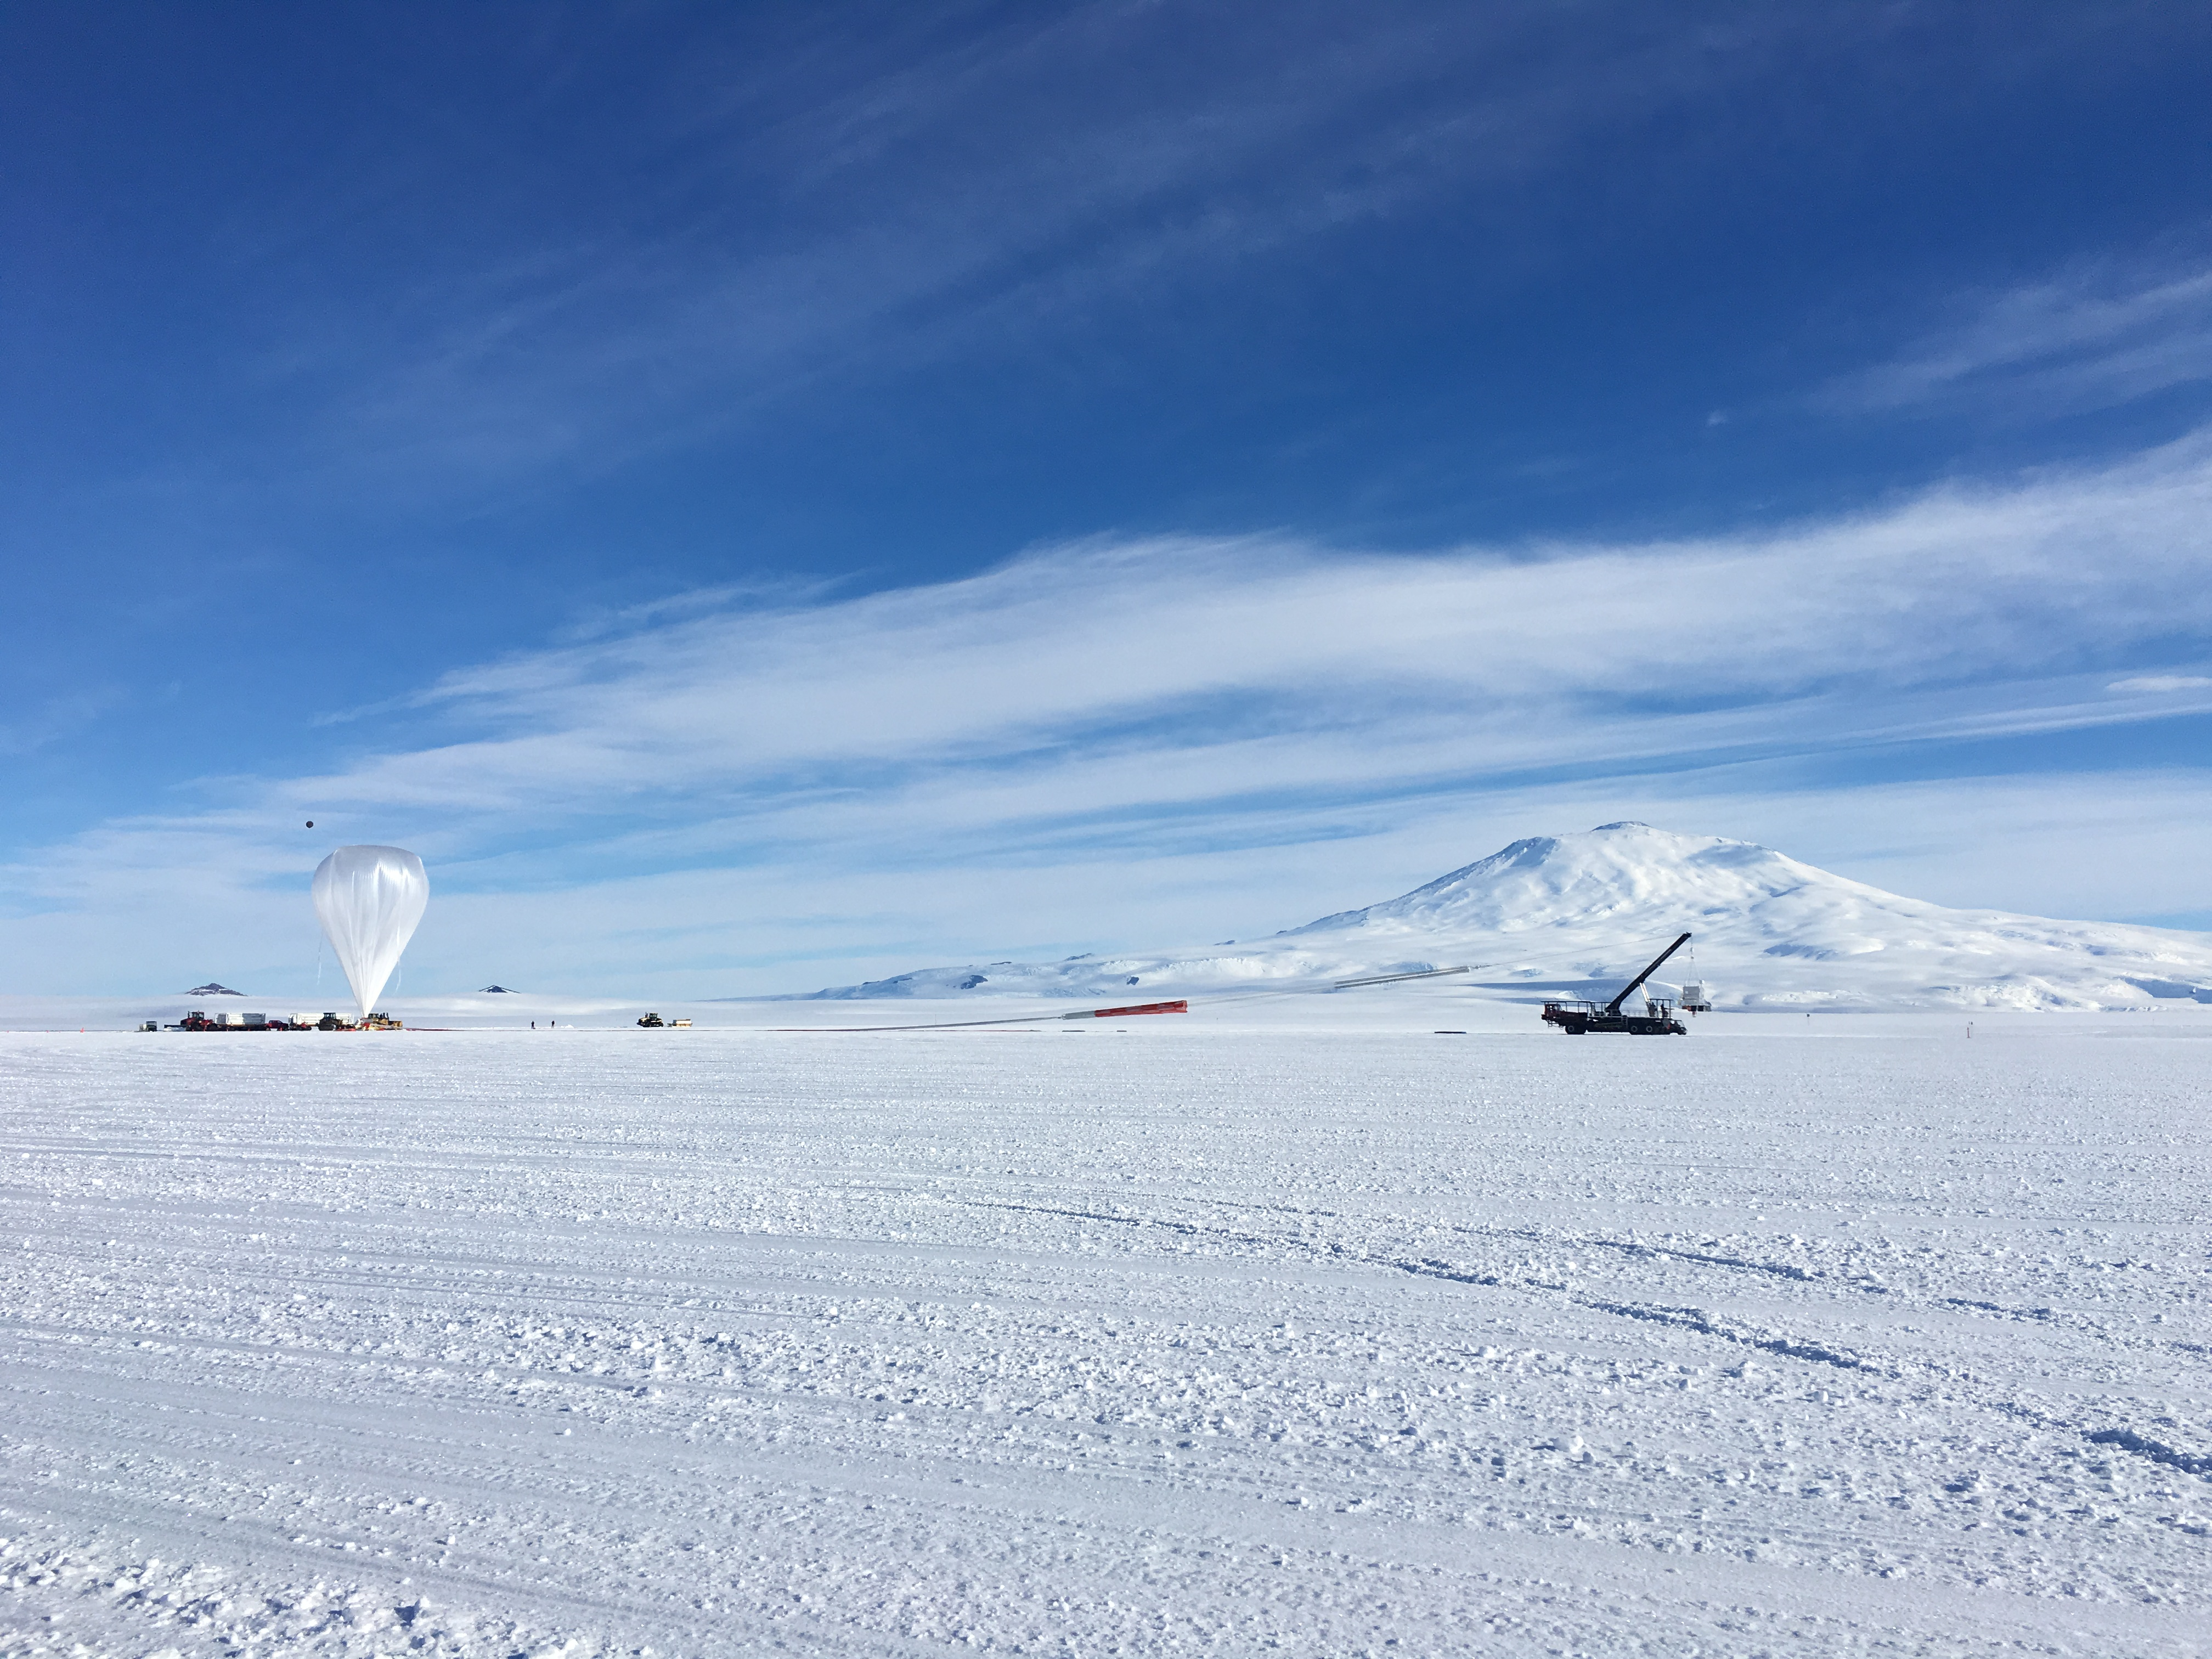 nasa antarctica - photo #37